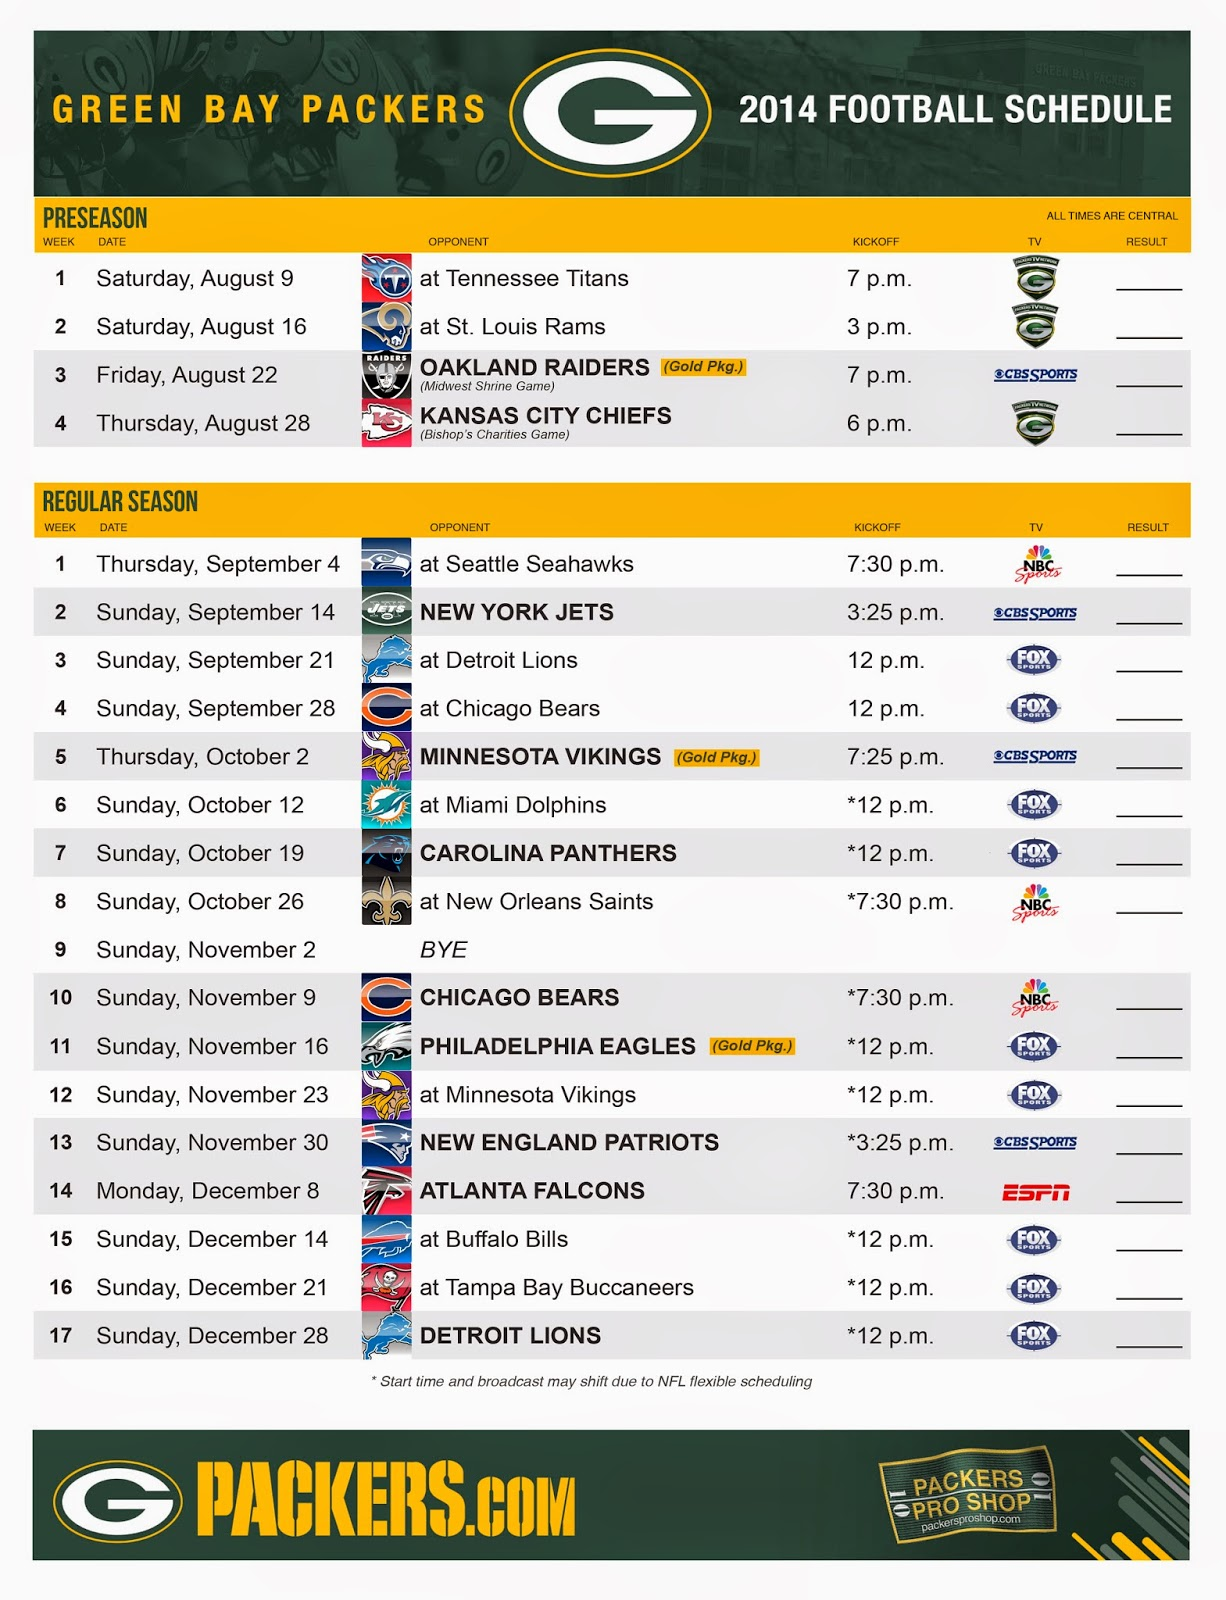 picture about Green Bay Packers Printable Schedule named Obtain PACKERVILLE United states of america 2014 Timetable Unveiled [1226x1600